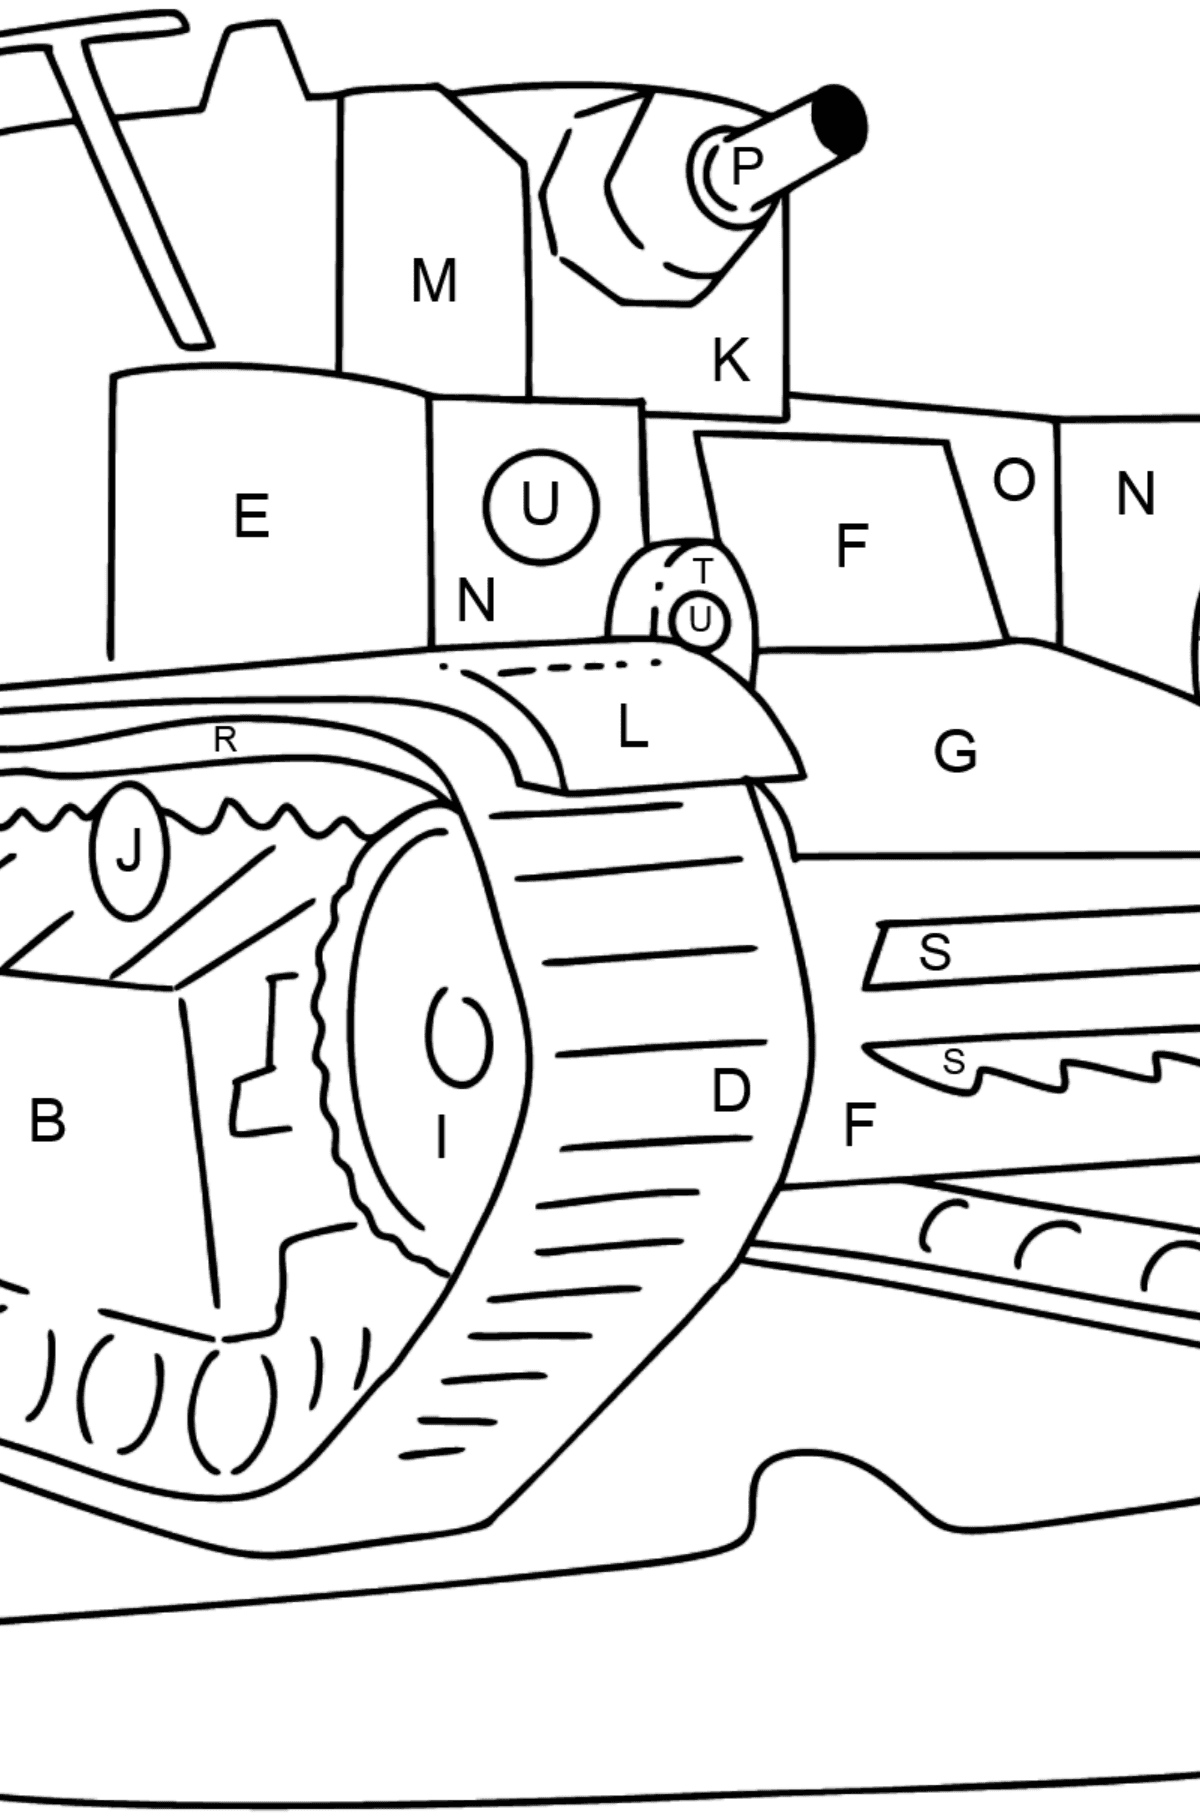 Tank T 28 coloring page - Coloring by Letters for Kids